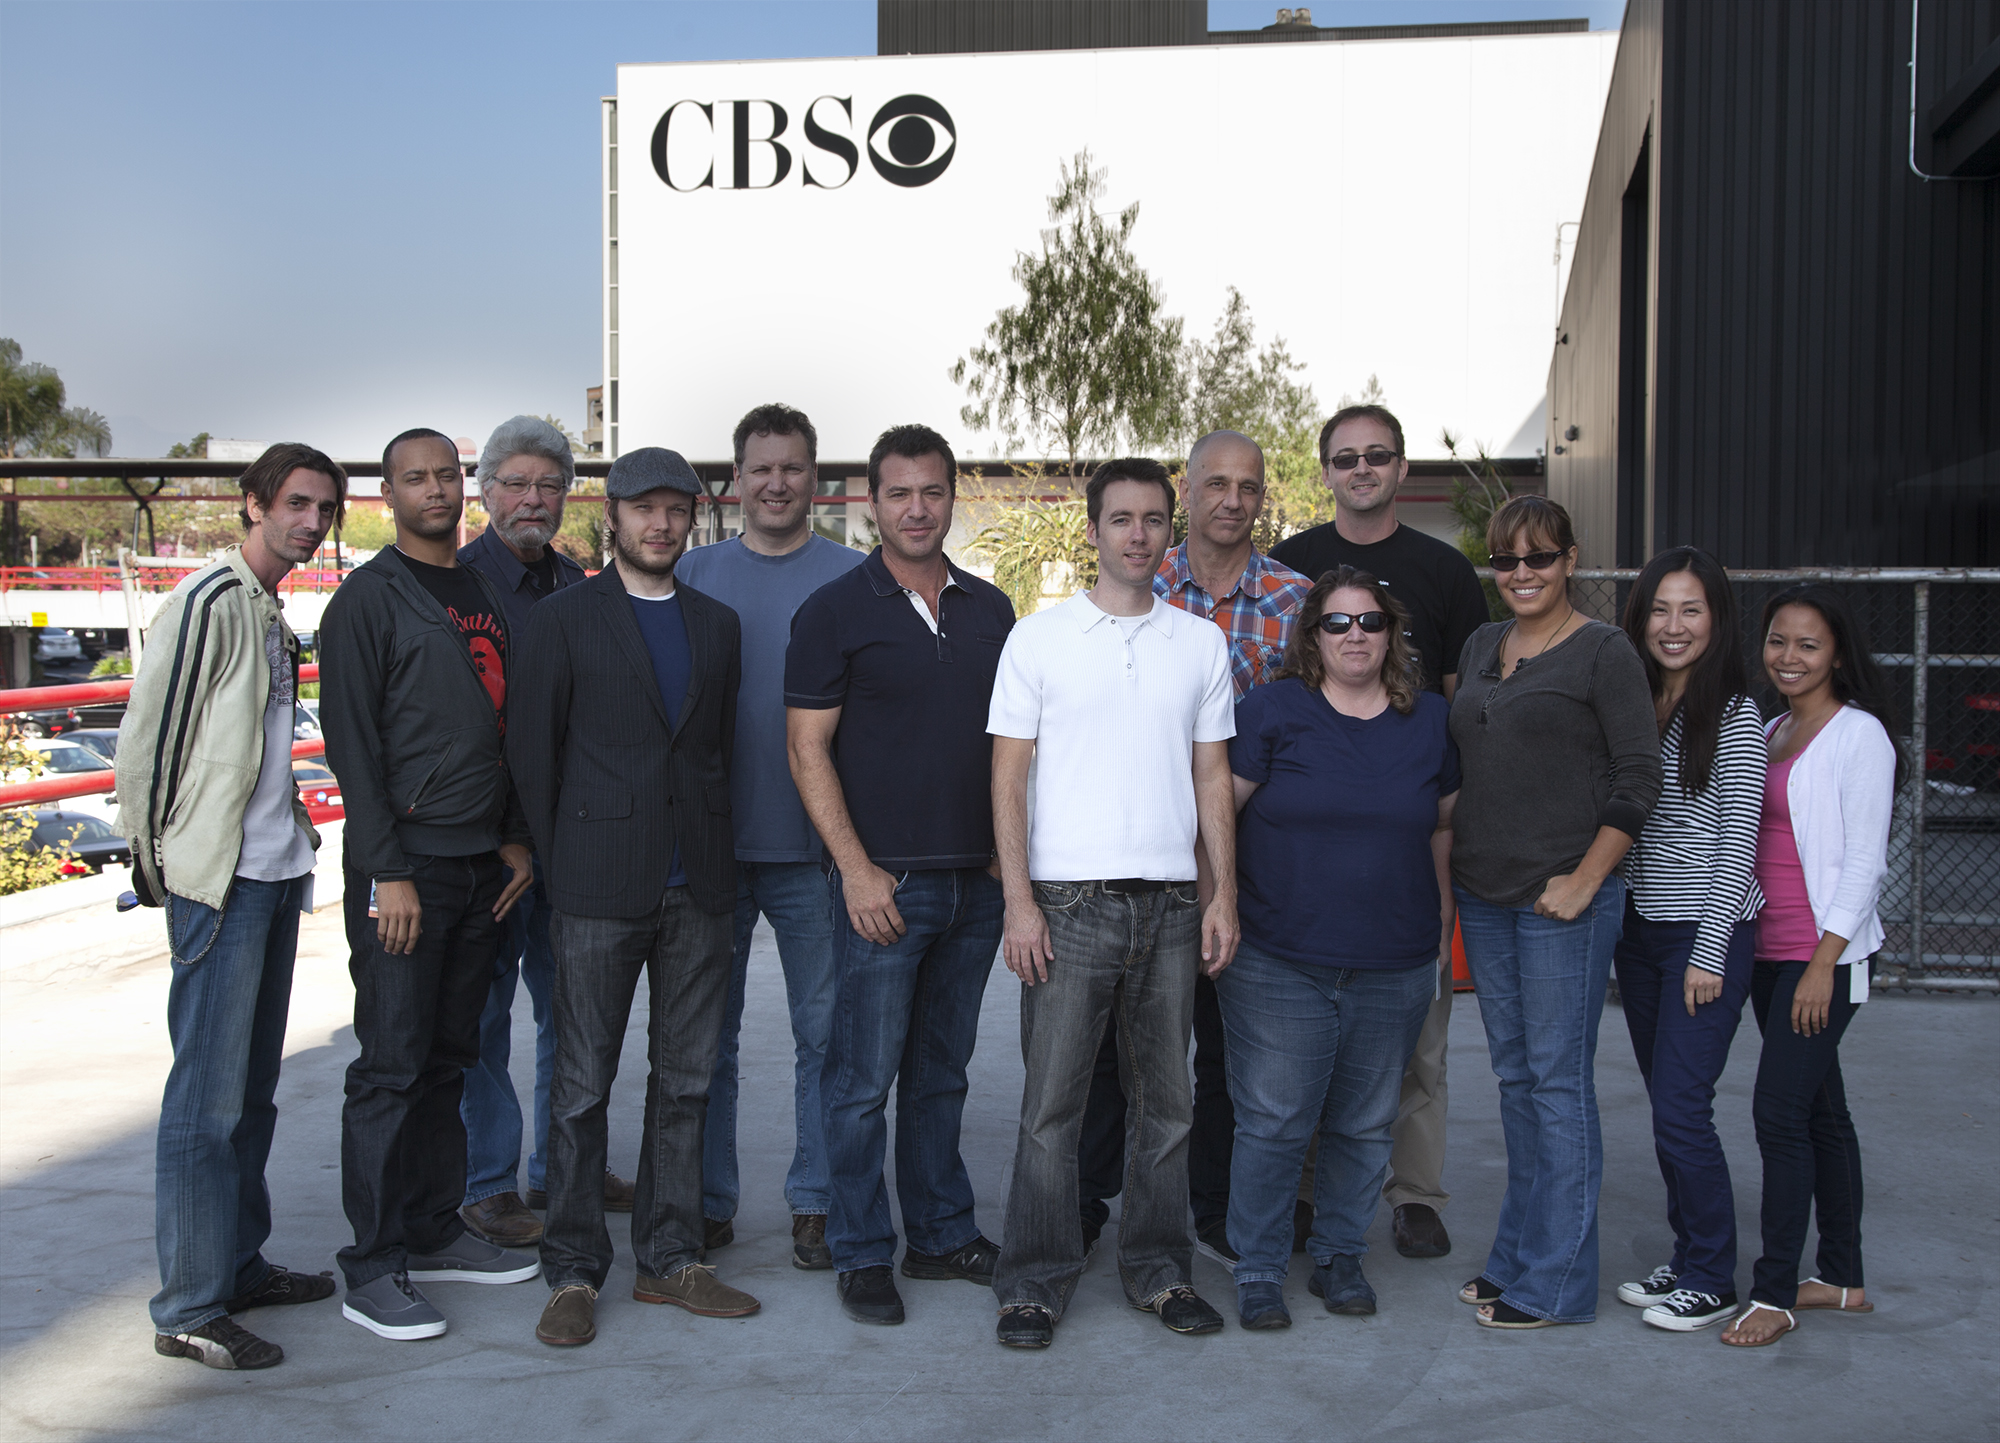 exclusive interviews cbs digital part v blog tony graf chris payne loren bivens eric bruno niel wray craig weiss chris tezber